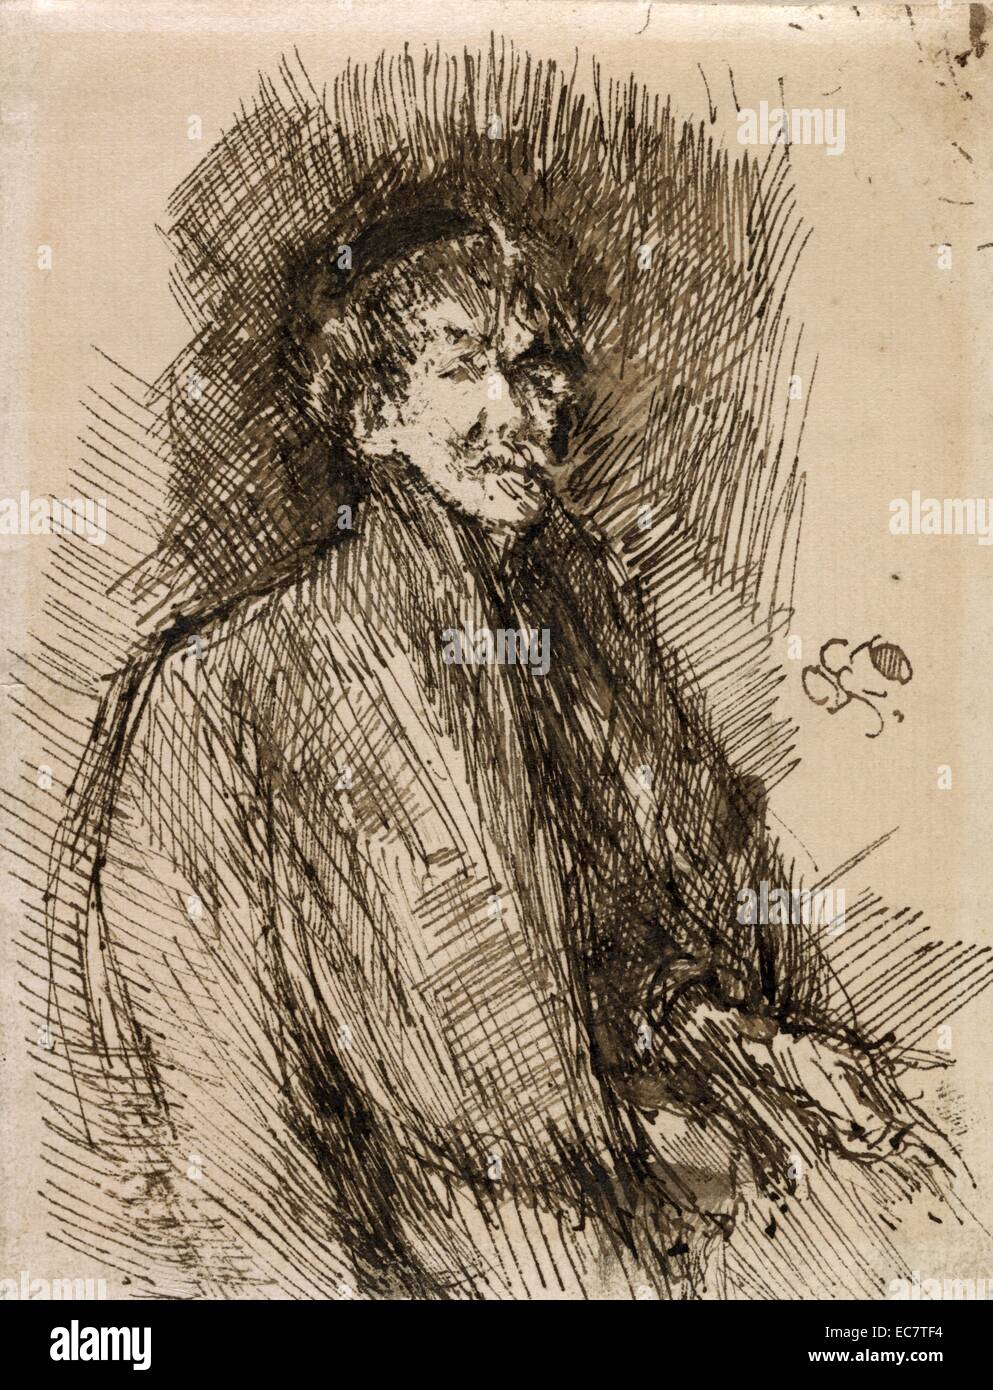 Self-portrait of Whistler, by James McNeill Whistler, 1834-1903. - Stock Image